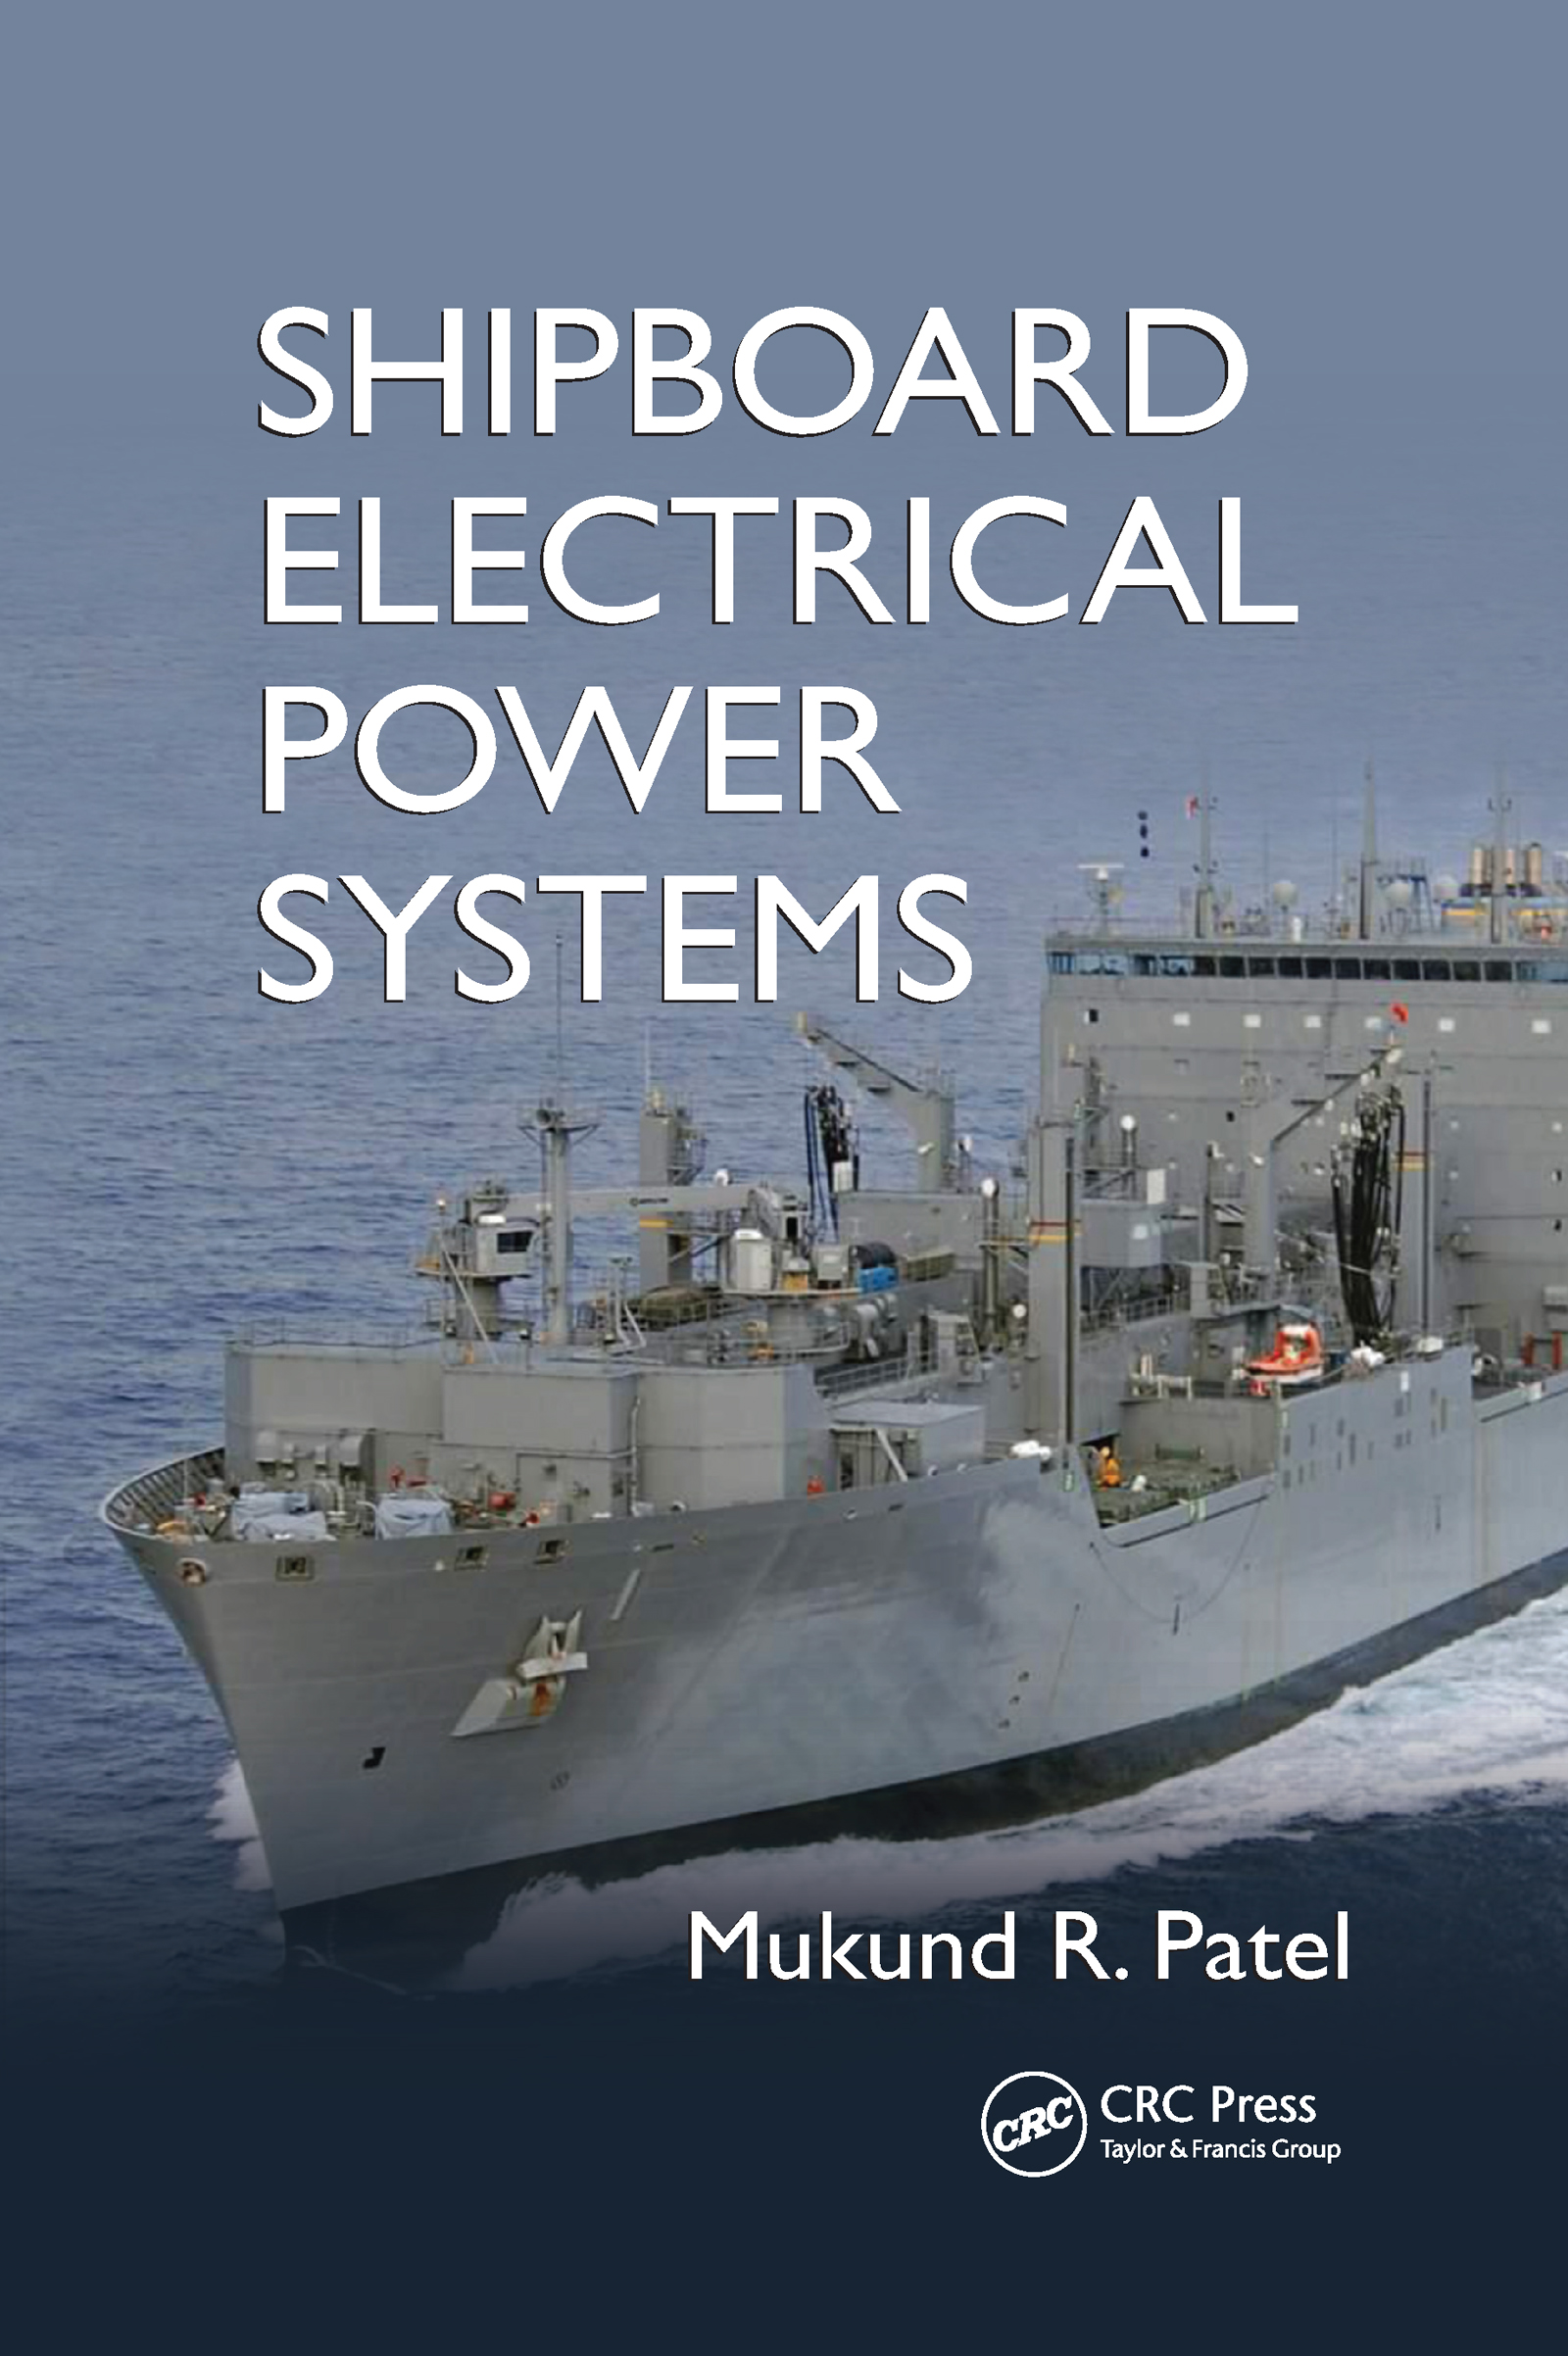 shipboard electrical power systems 1st edition (paperback) routledge